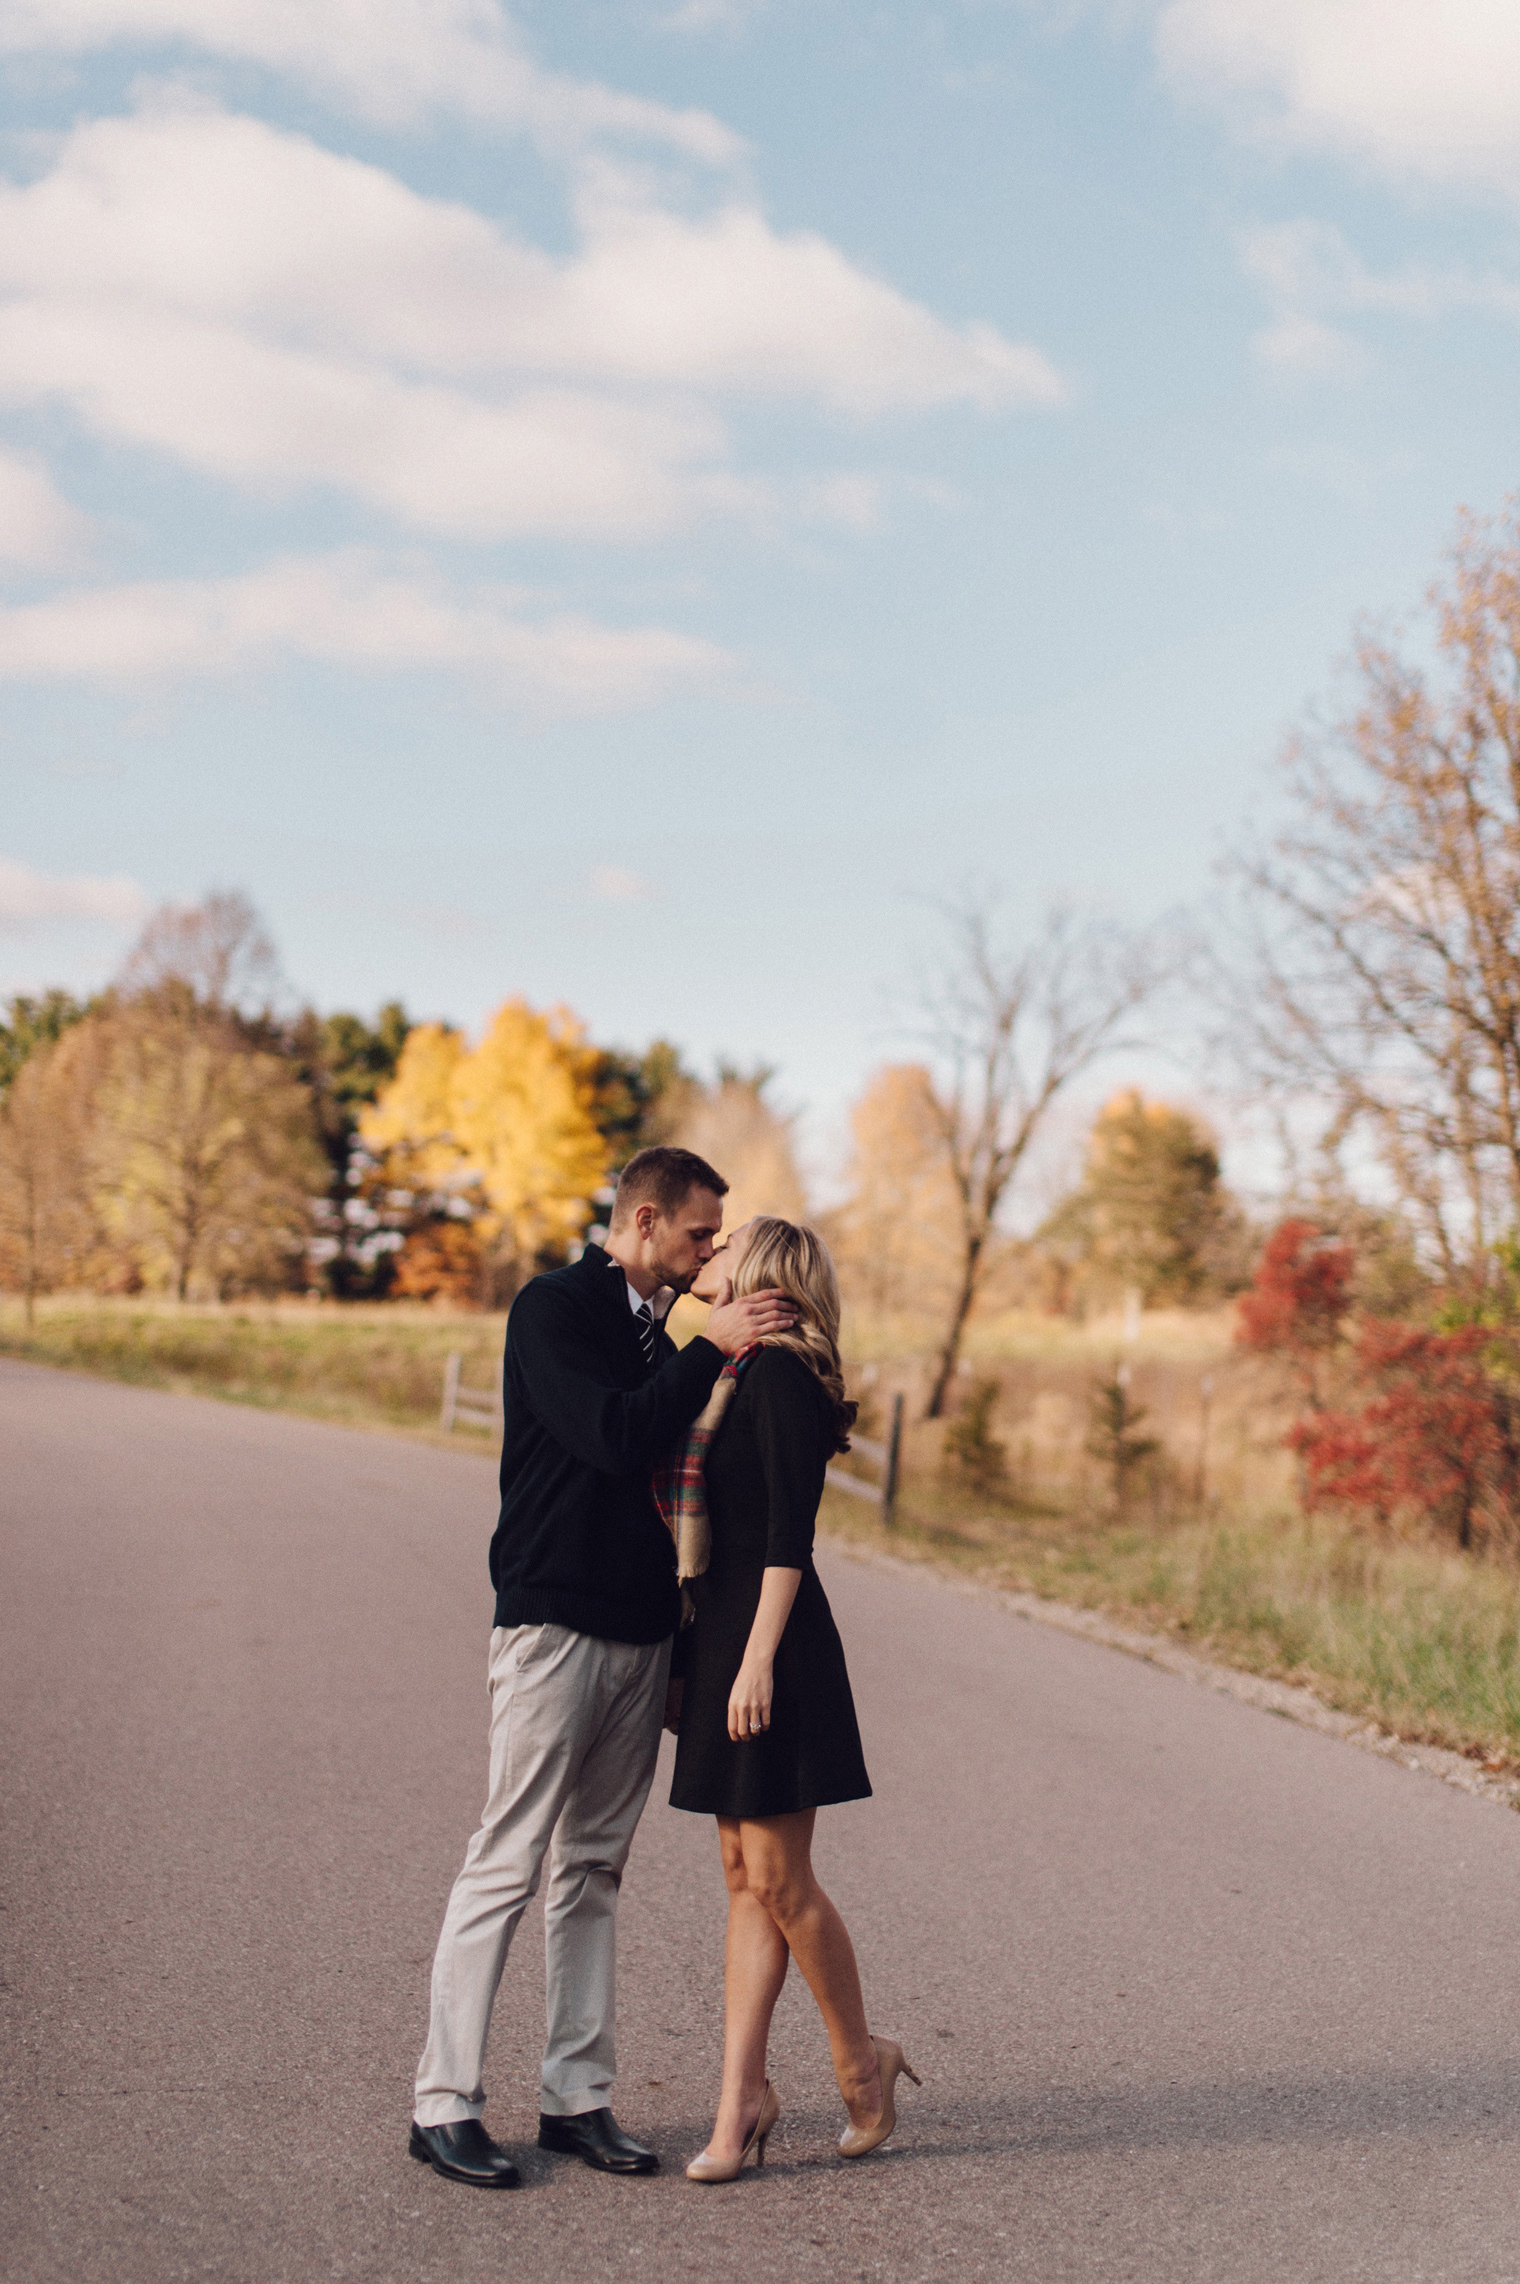 Fall couples photography at the Ann Arbor Botanical Gardens.